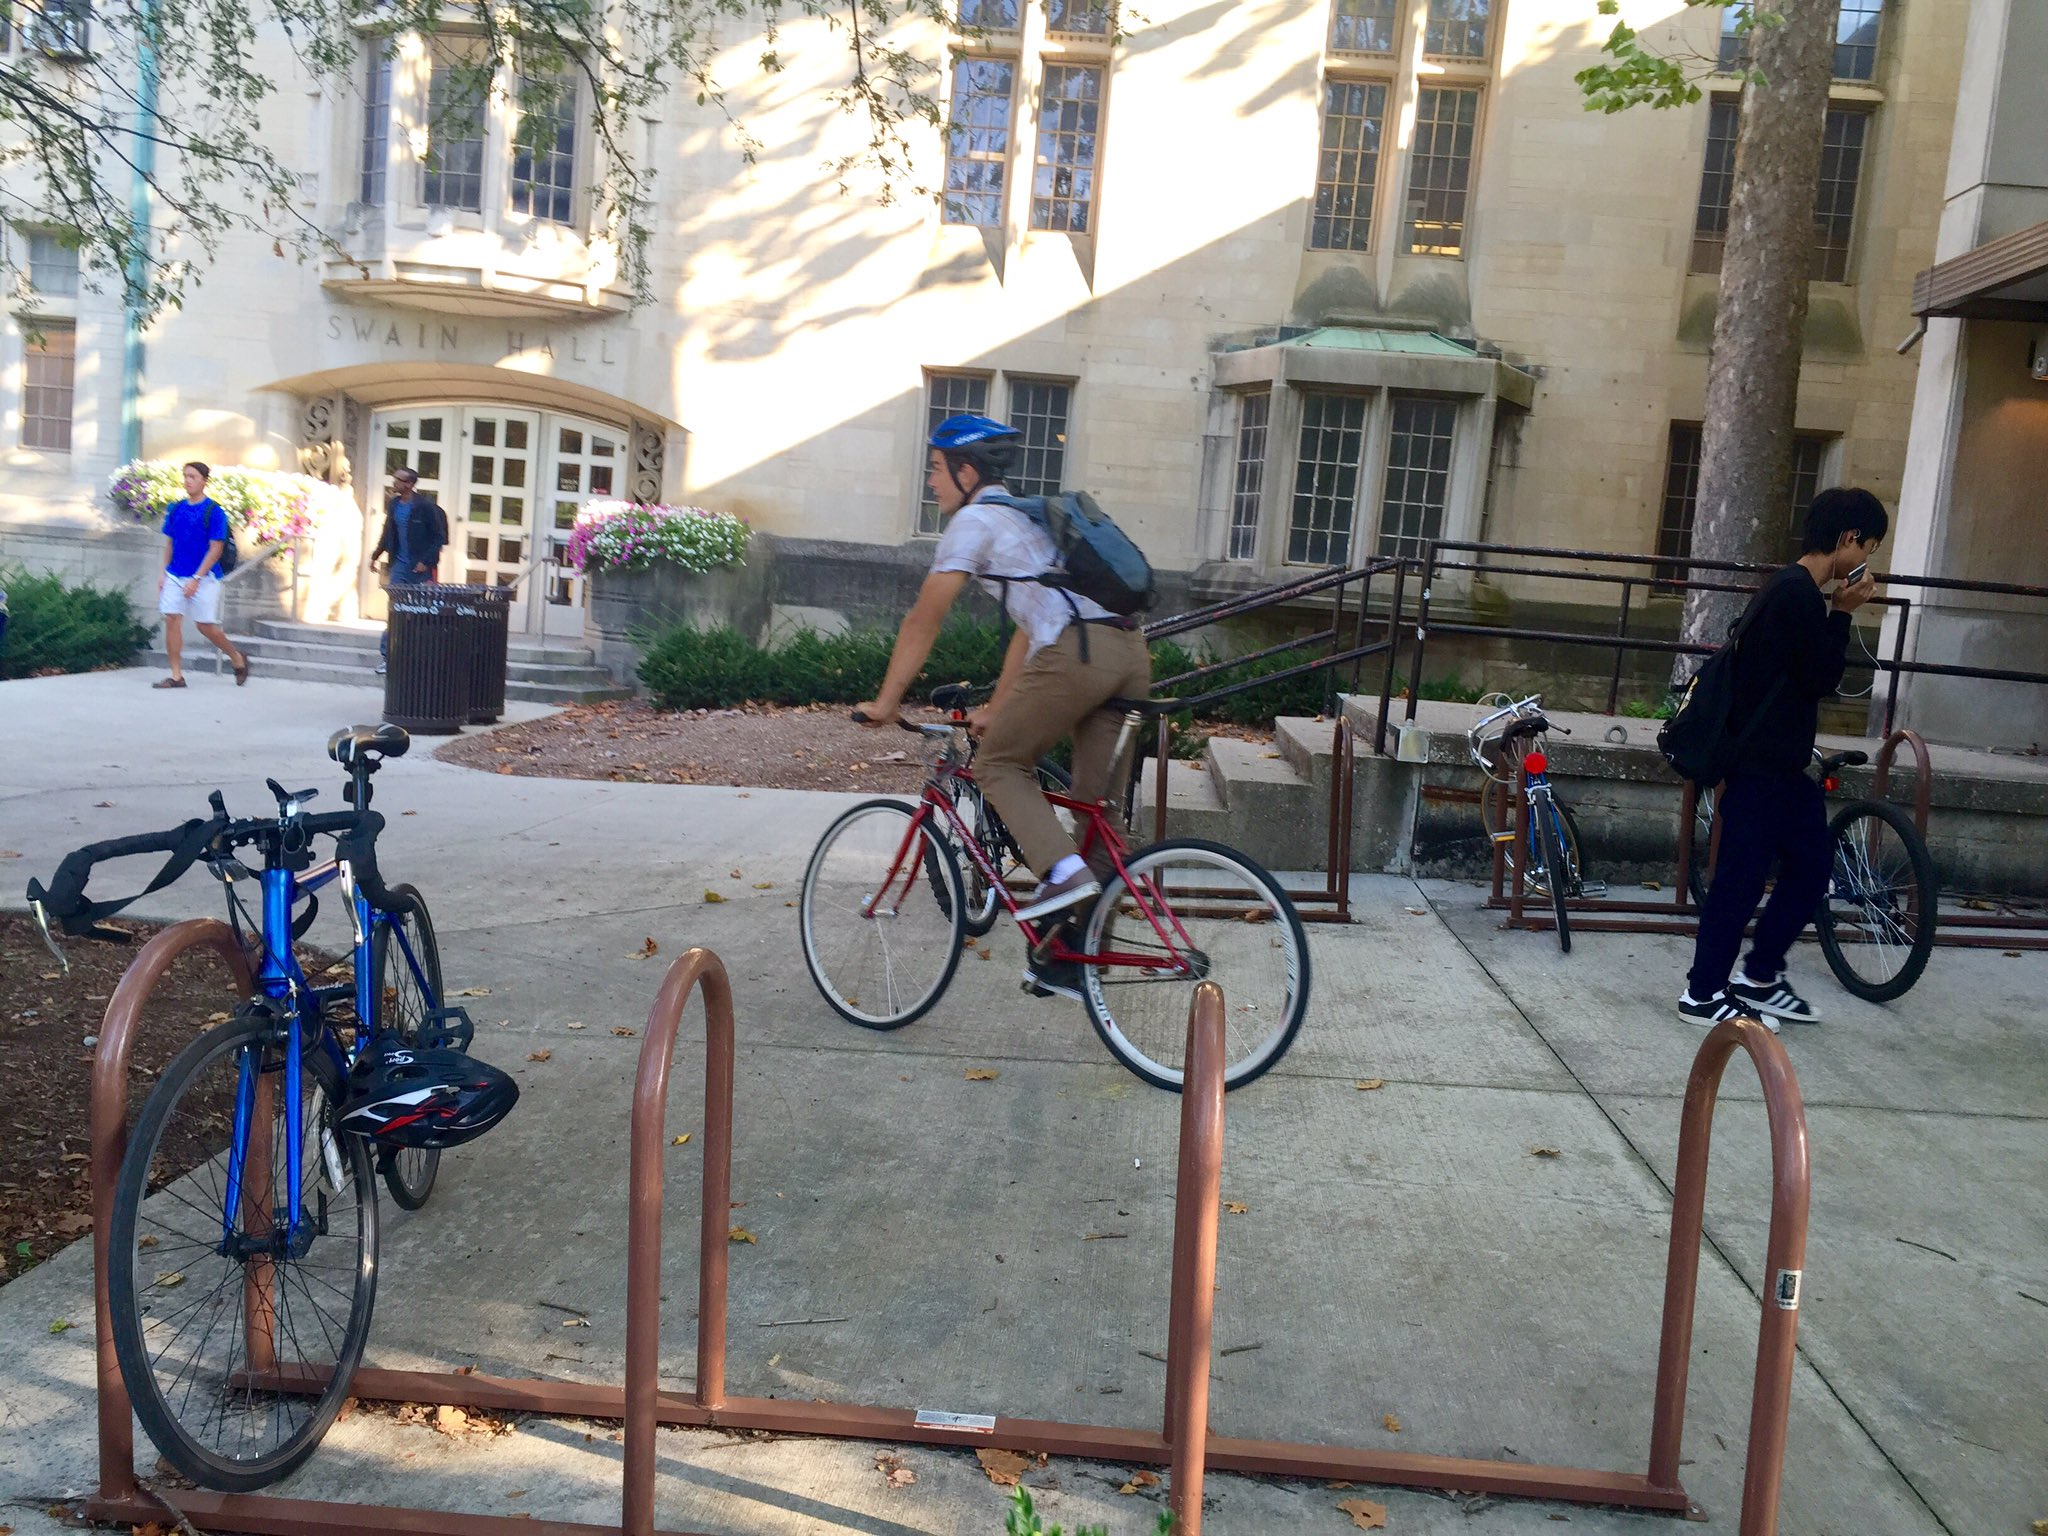 Now that class is done, Corben hops on his bicycle. Like many students, Corben bikes most places he needs to go. https://t.co/dj50E7j1bD